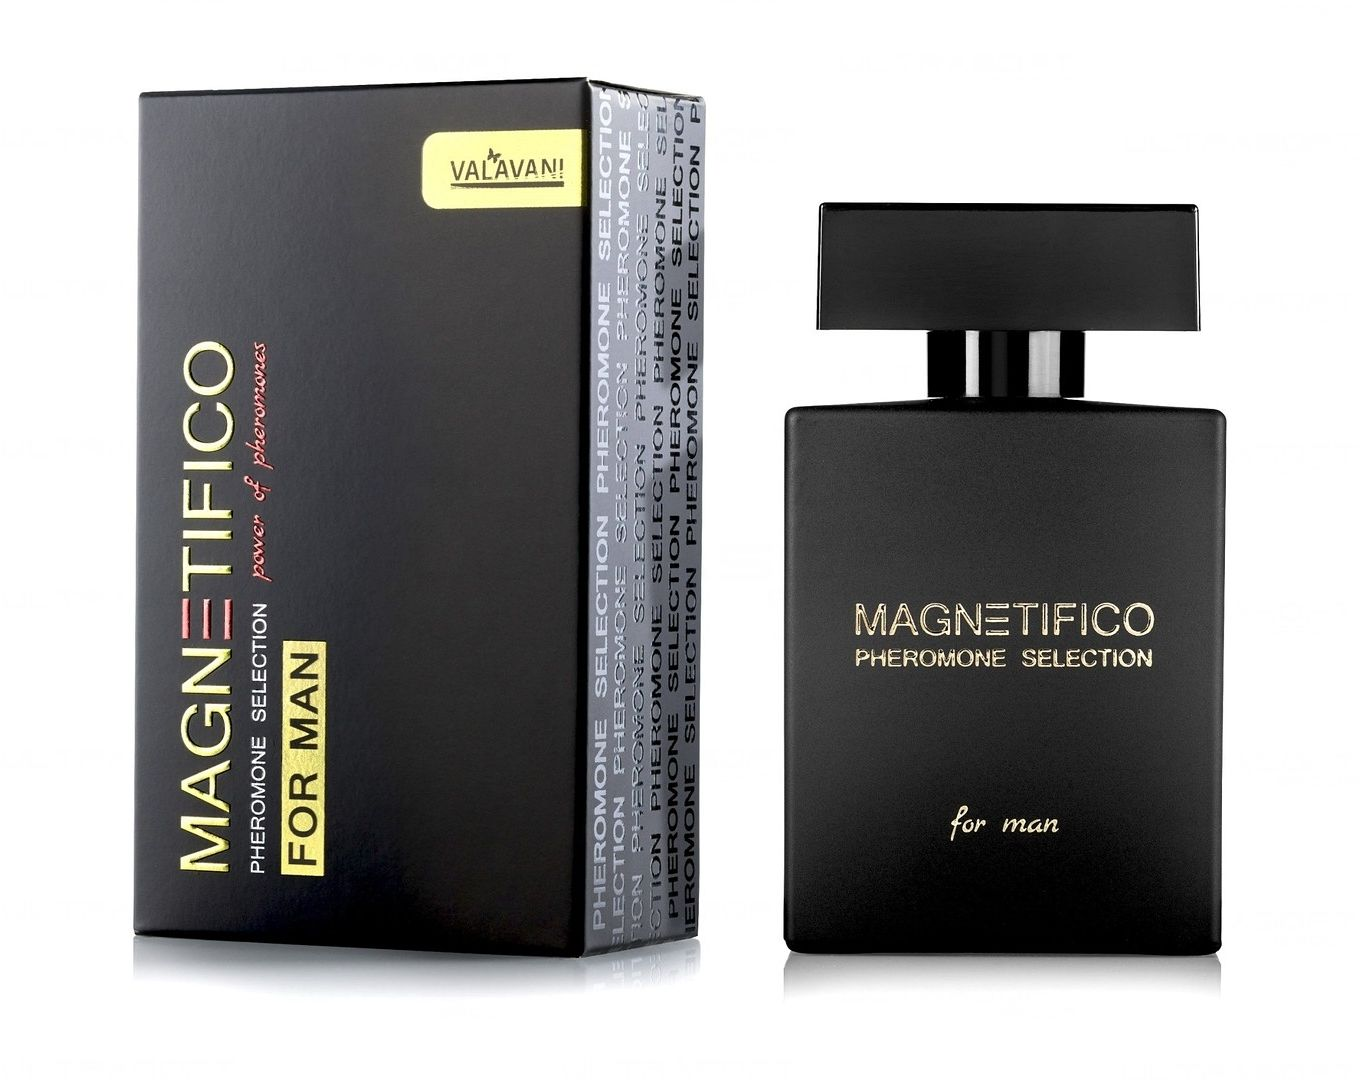 Magnetifico selection - męskie perfumy z feromonami